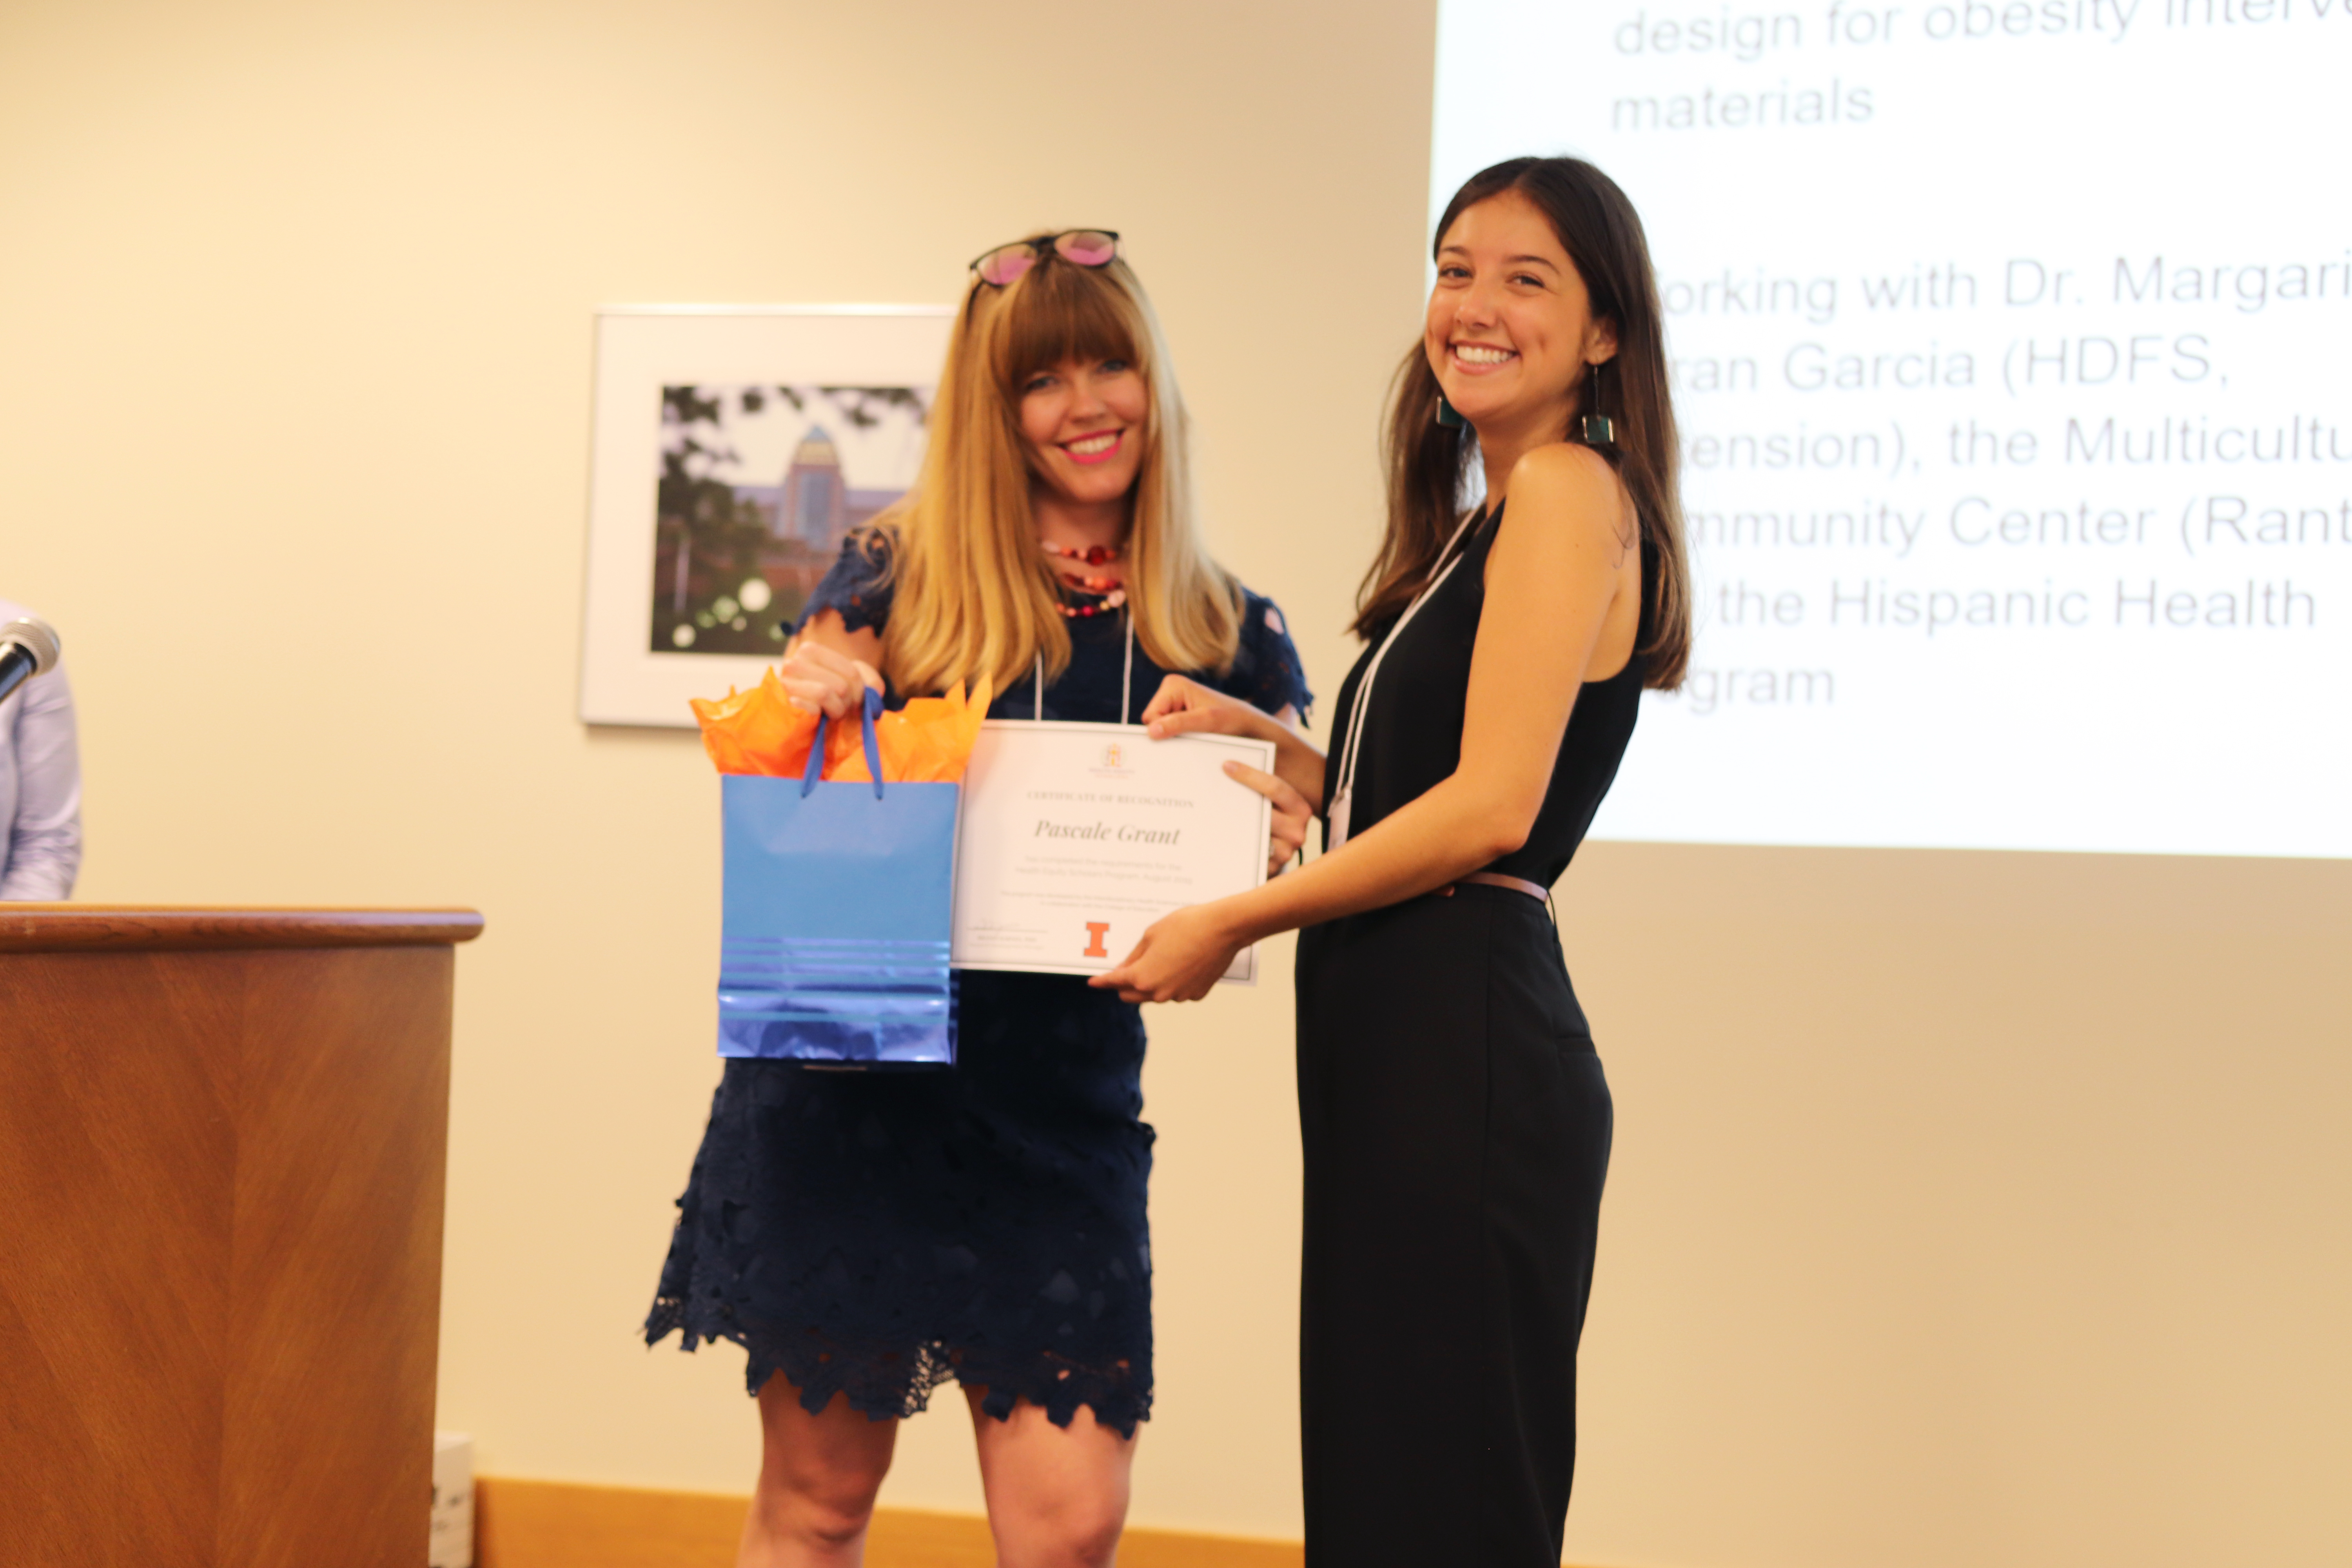 Pascale receiving her certificate from Health Equity Scholars program manager Kelsey Hassevoort